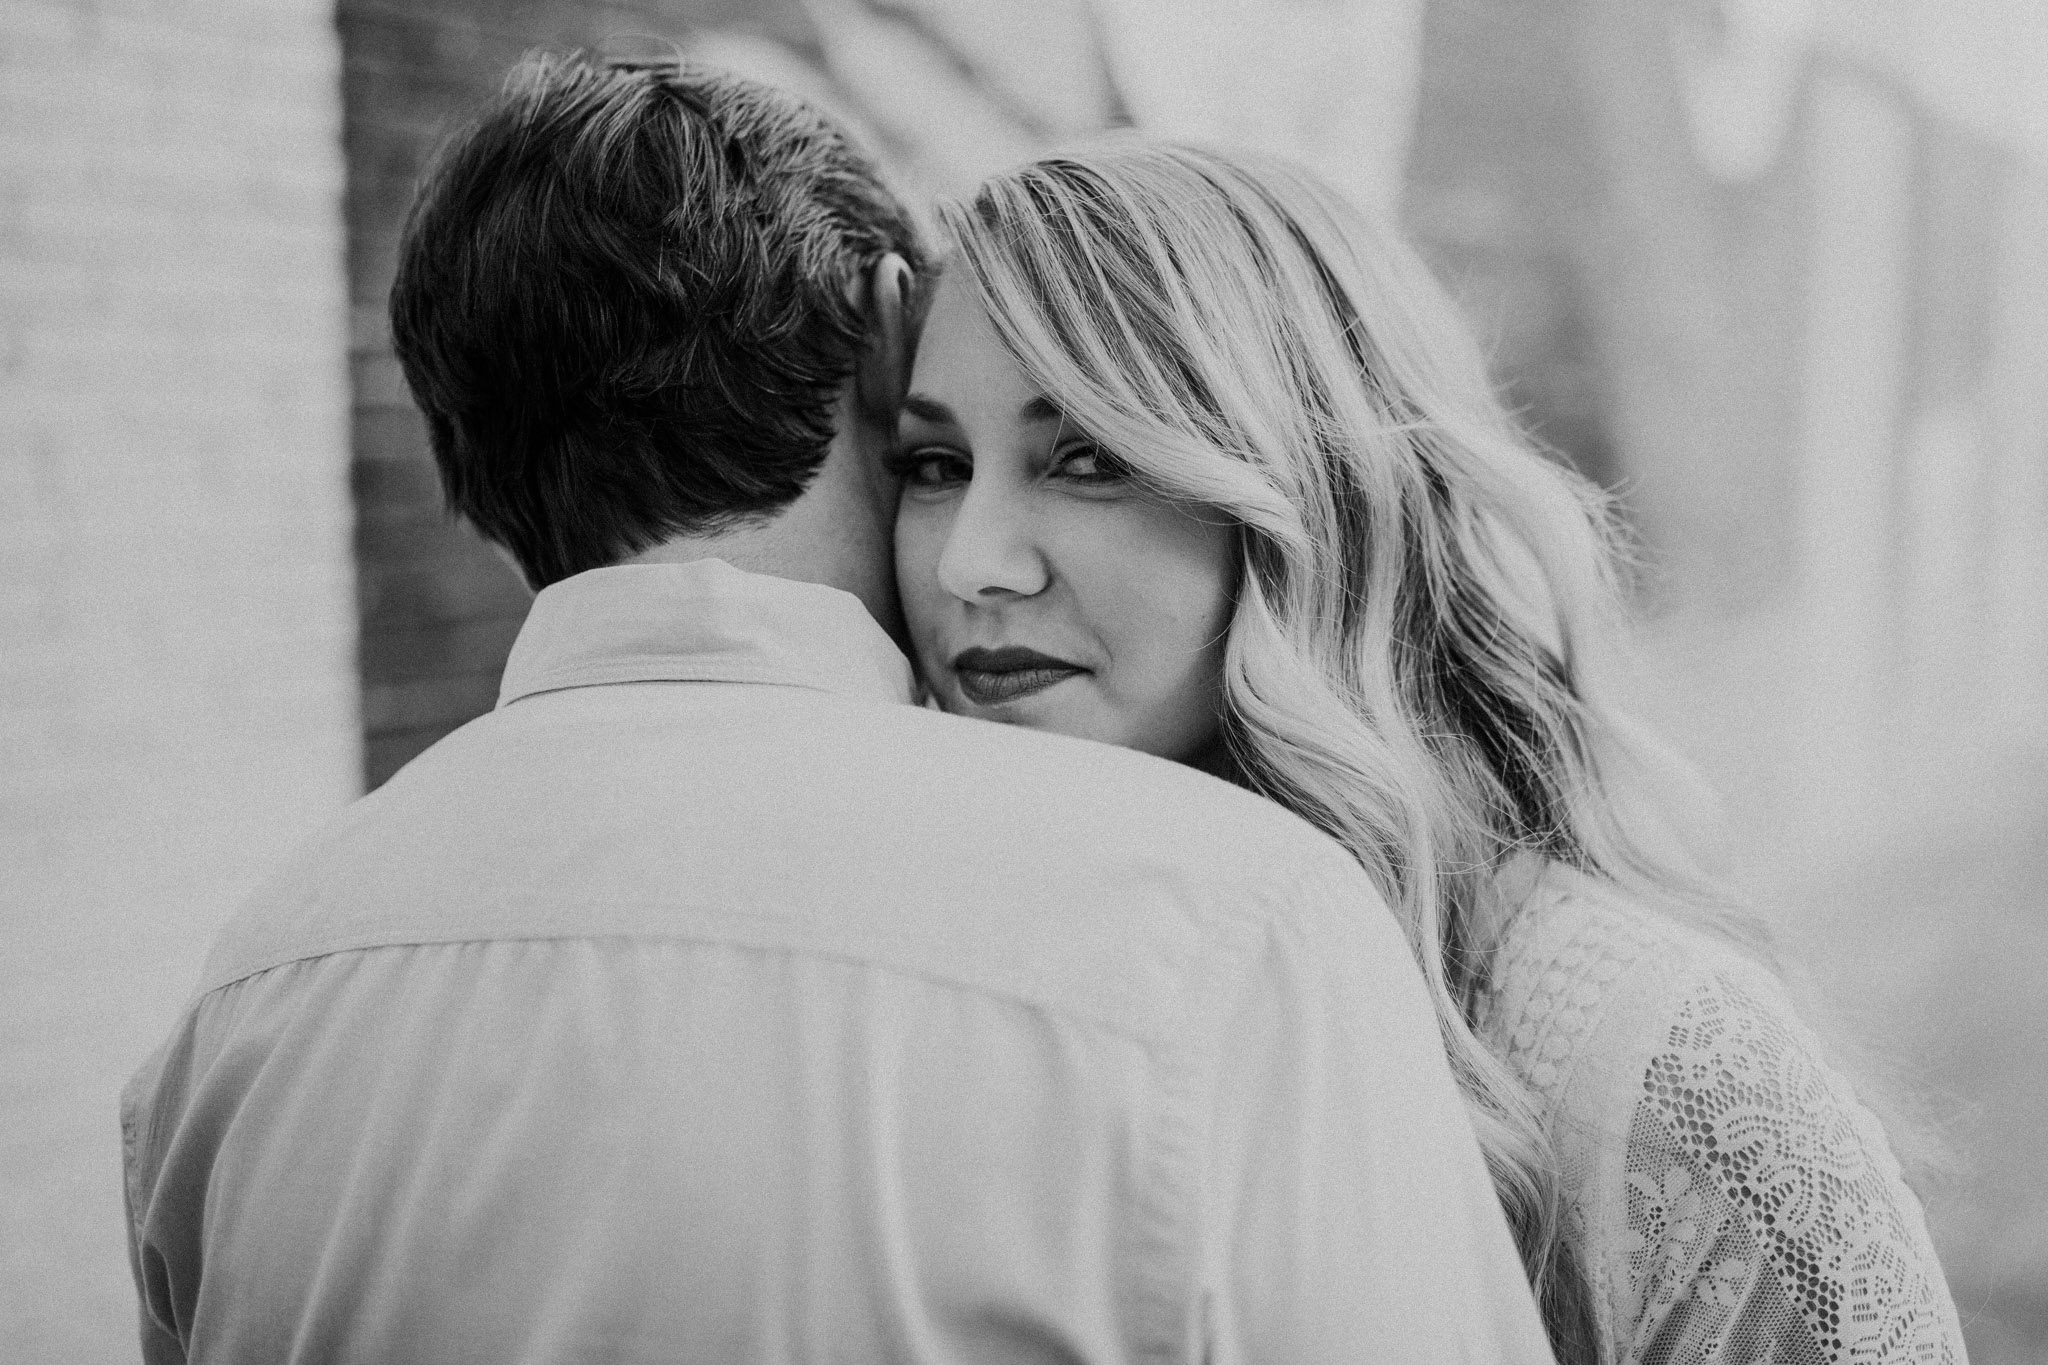 Angelle&Charlie_DFW_Wedding_Photography_02.jpg